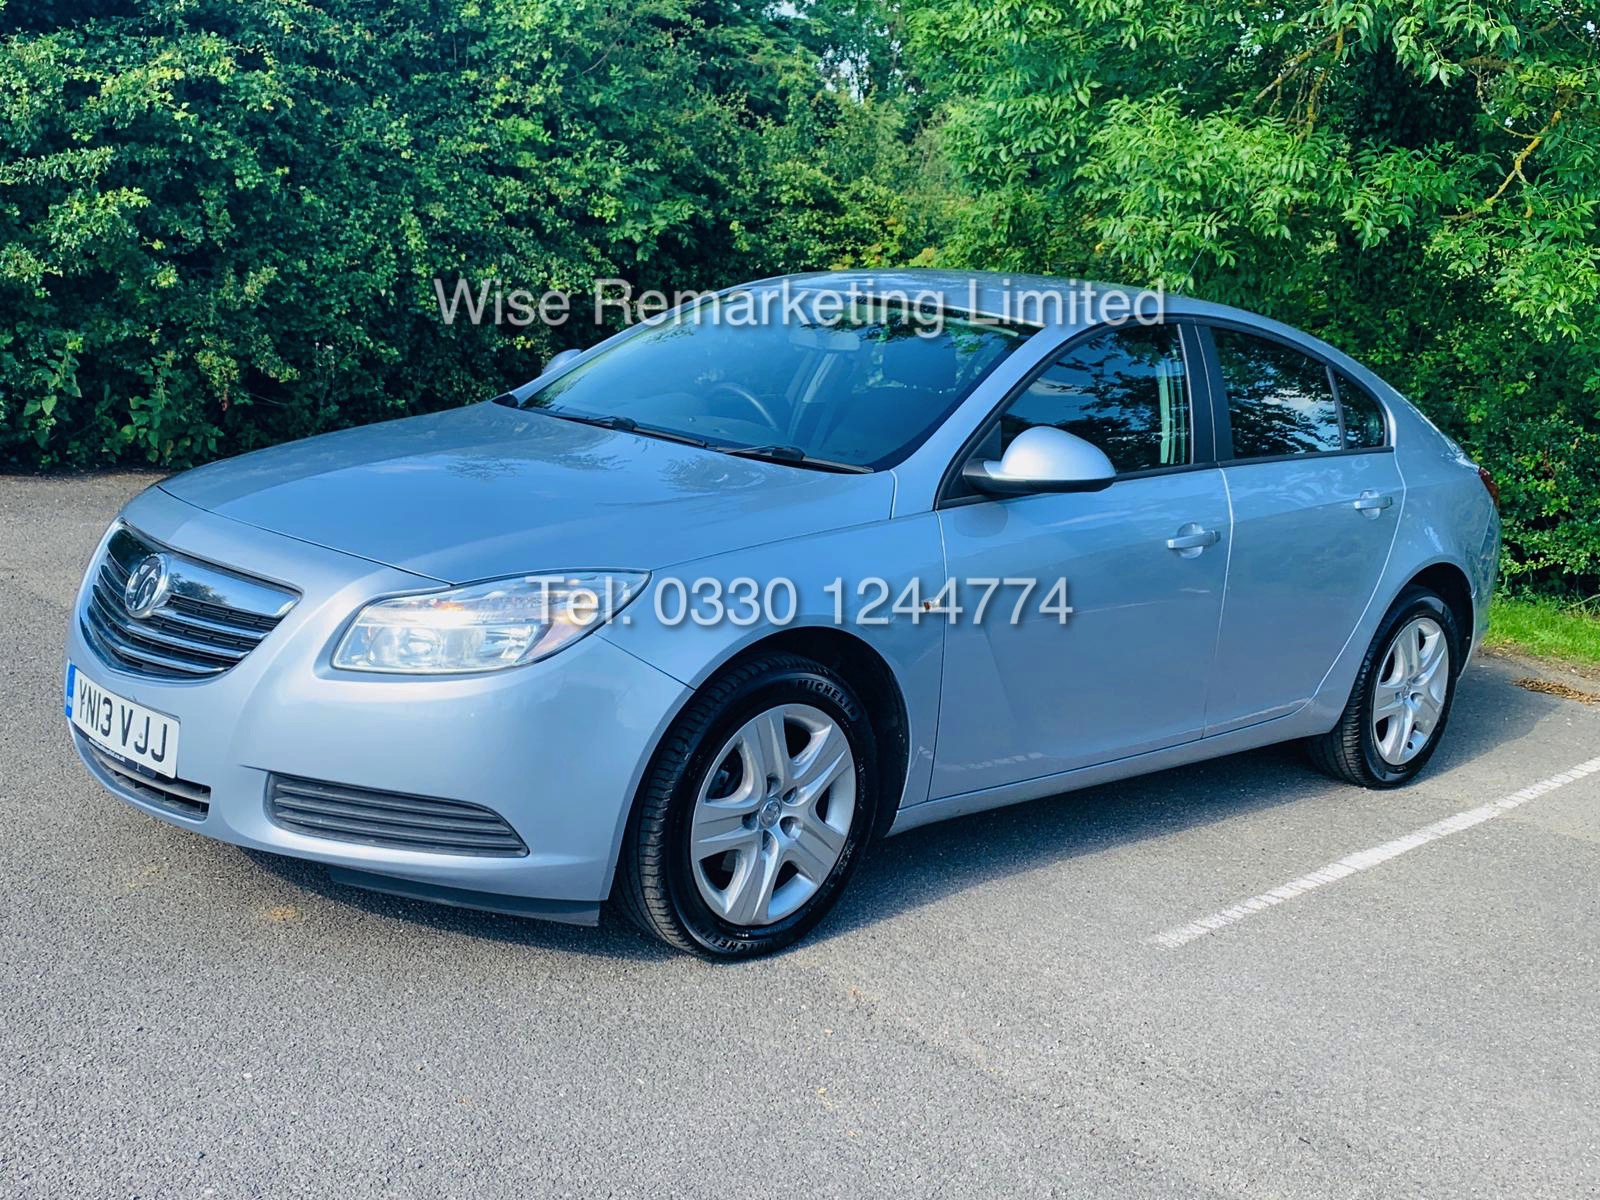 VAUXHALL INSIGNIA 2.0 CDTI ECOFLEX ES 2013 *FSH* 1 OWNER FROM NEW - Image 9 of 30